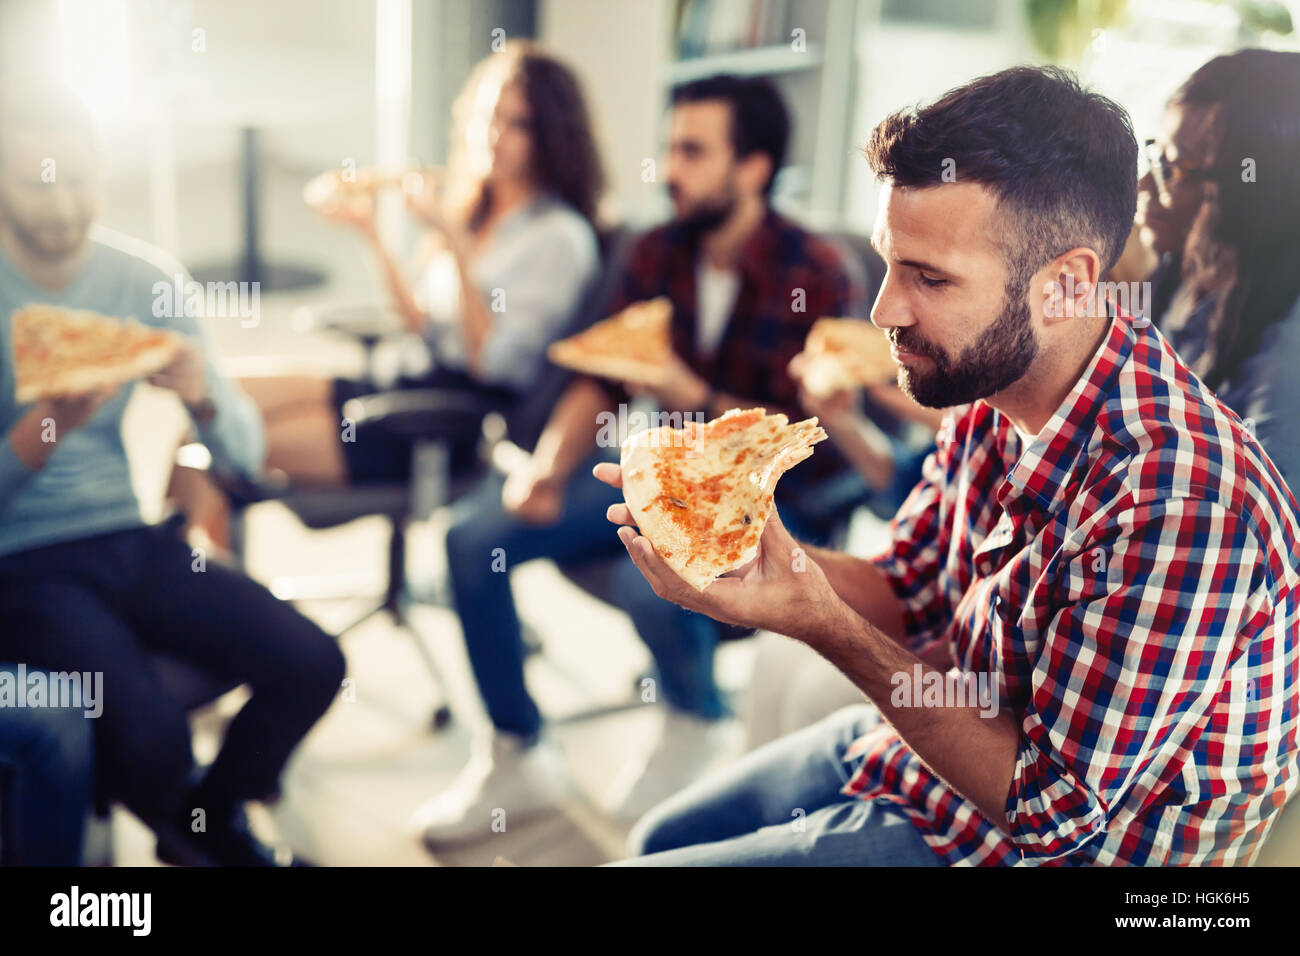 Coworkers eating pizza during work  break at office - Stock Image